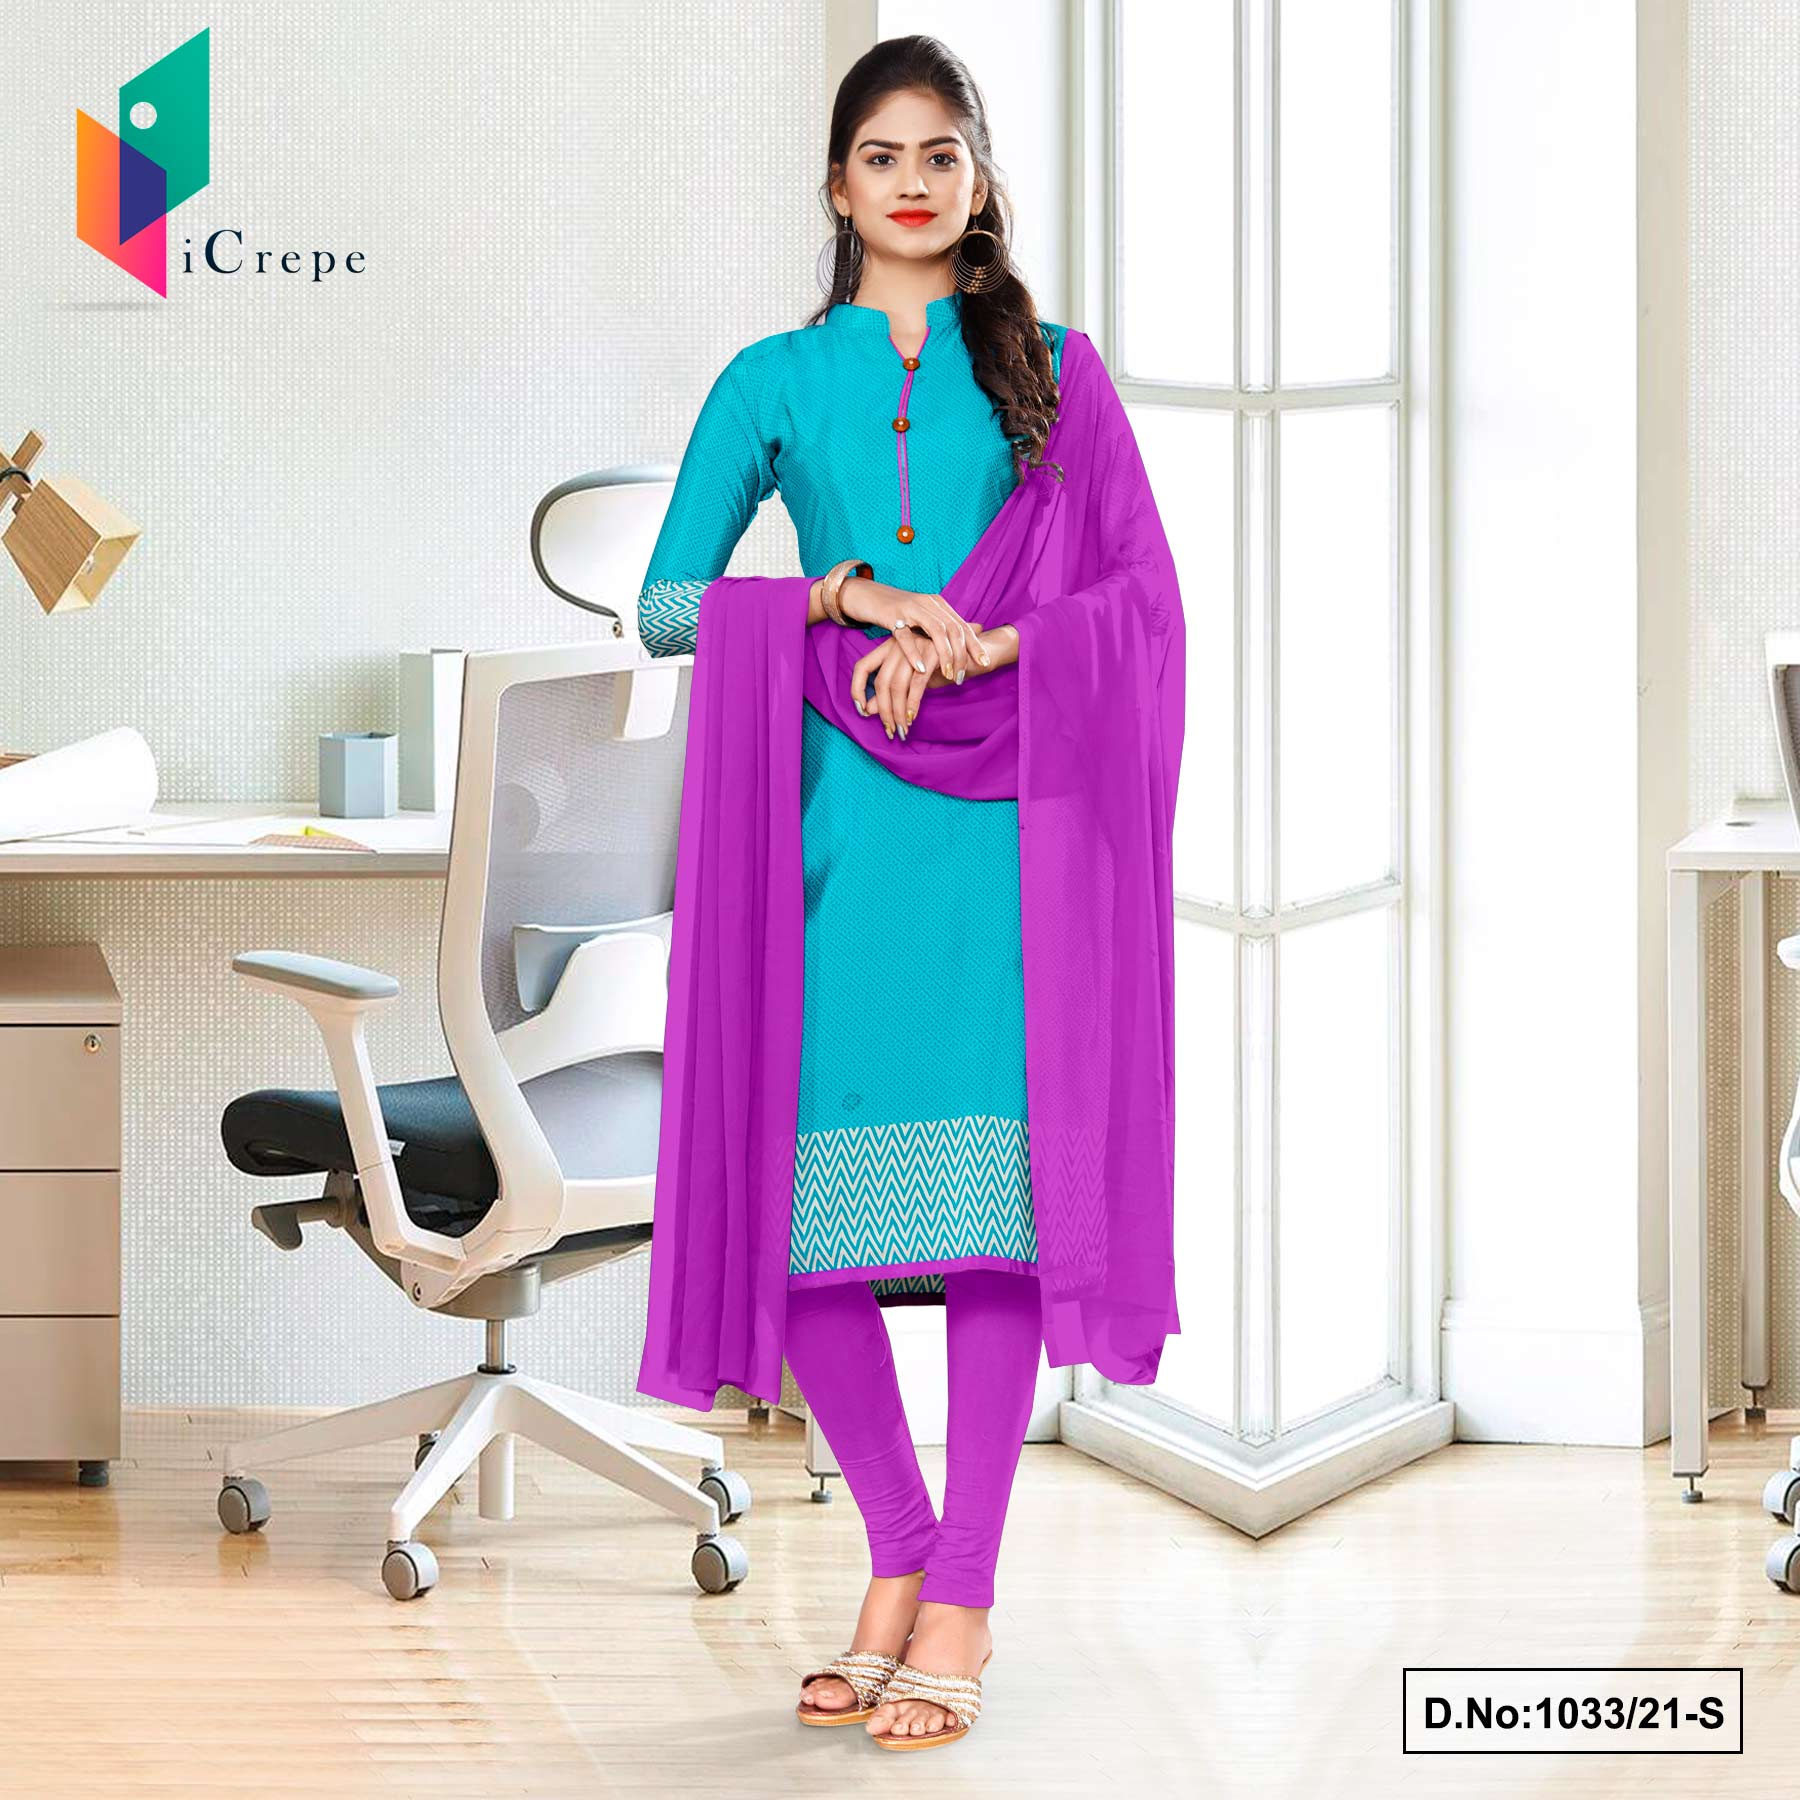 Sea Green lavender Premium Italian Silk Crepe Salwar Combo for Workers Uniform Sarees